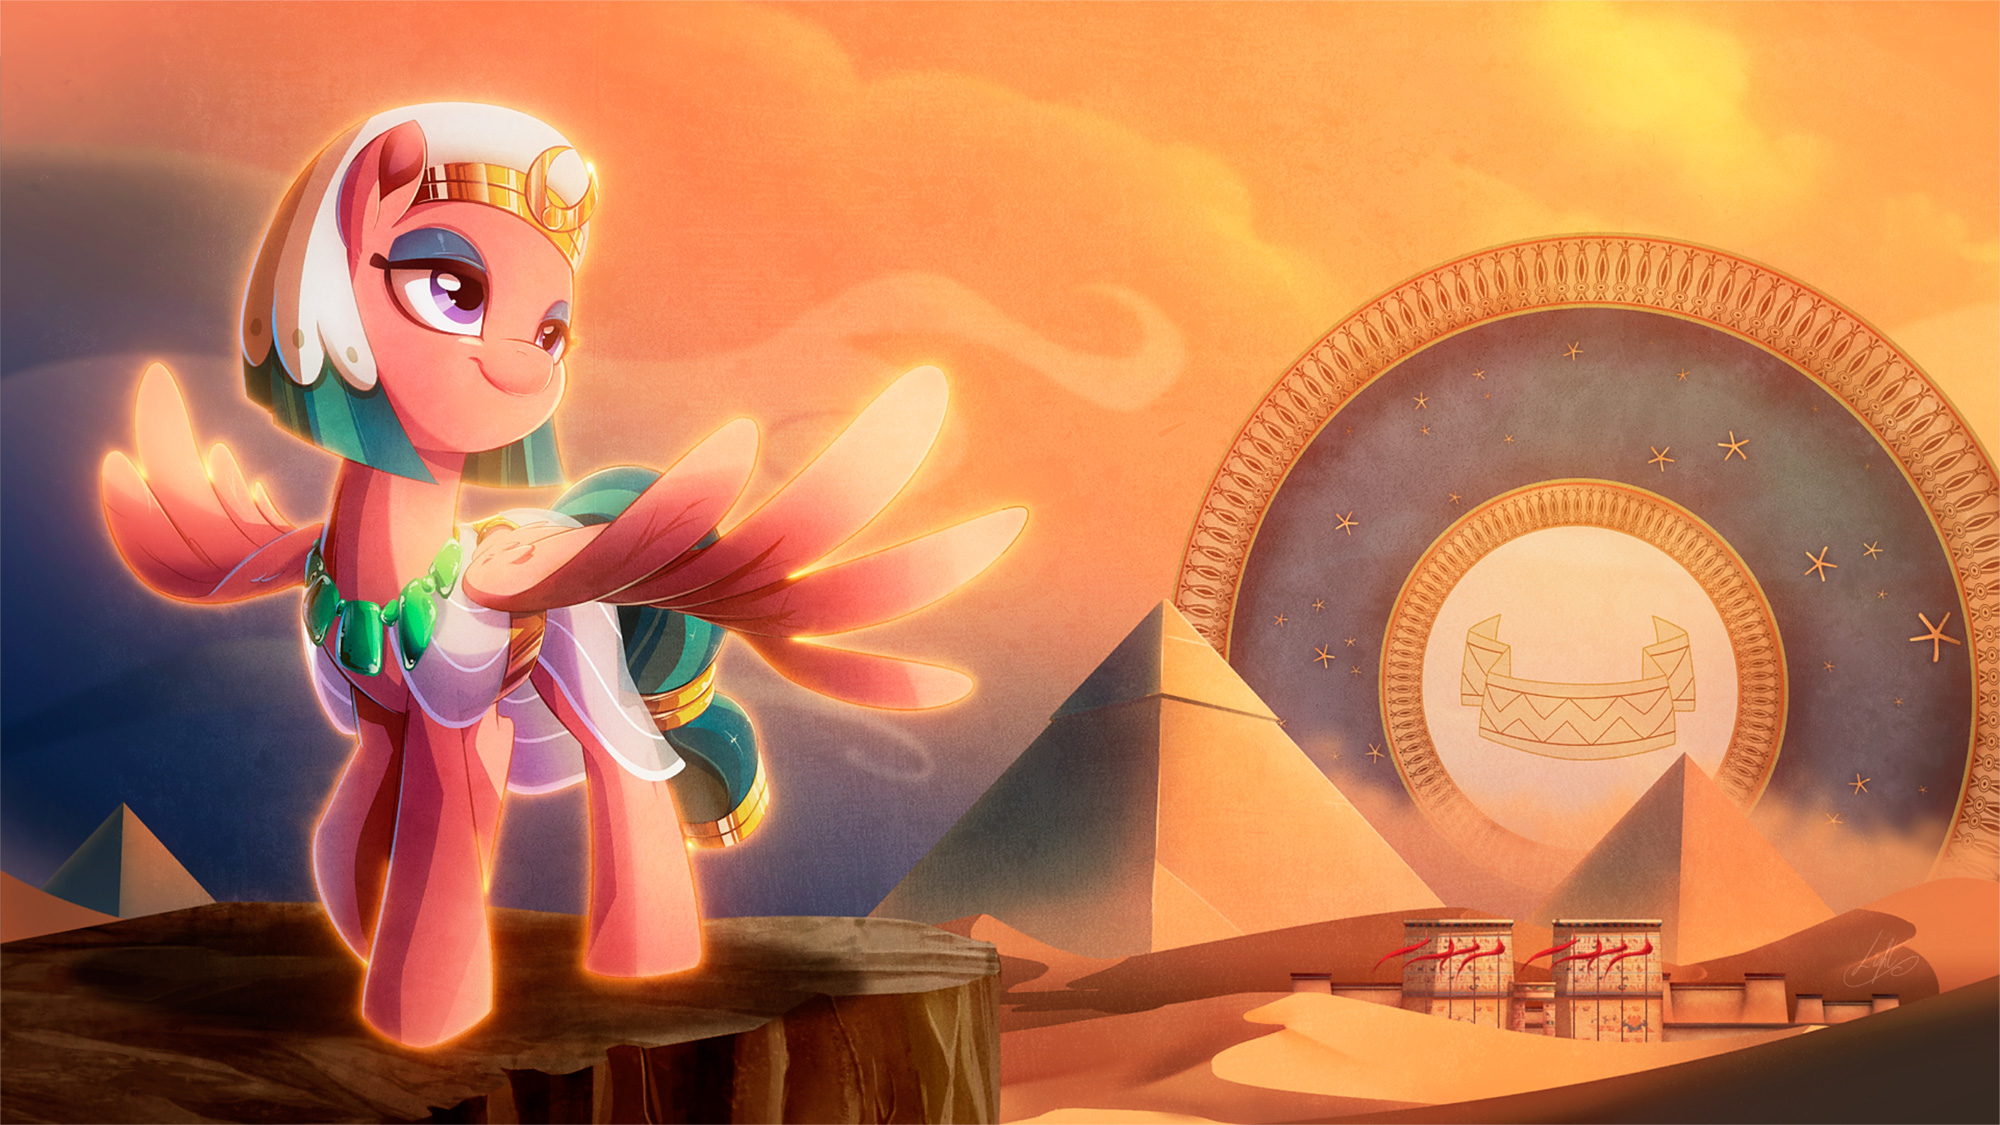 Epic wallpapers with Pillars of Equestria from My Little ...